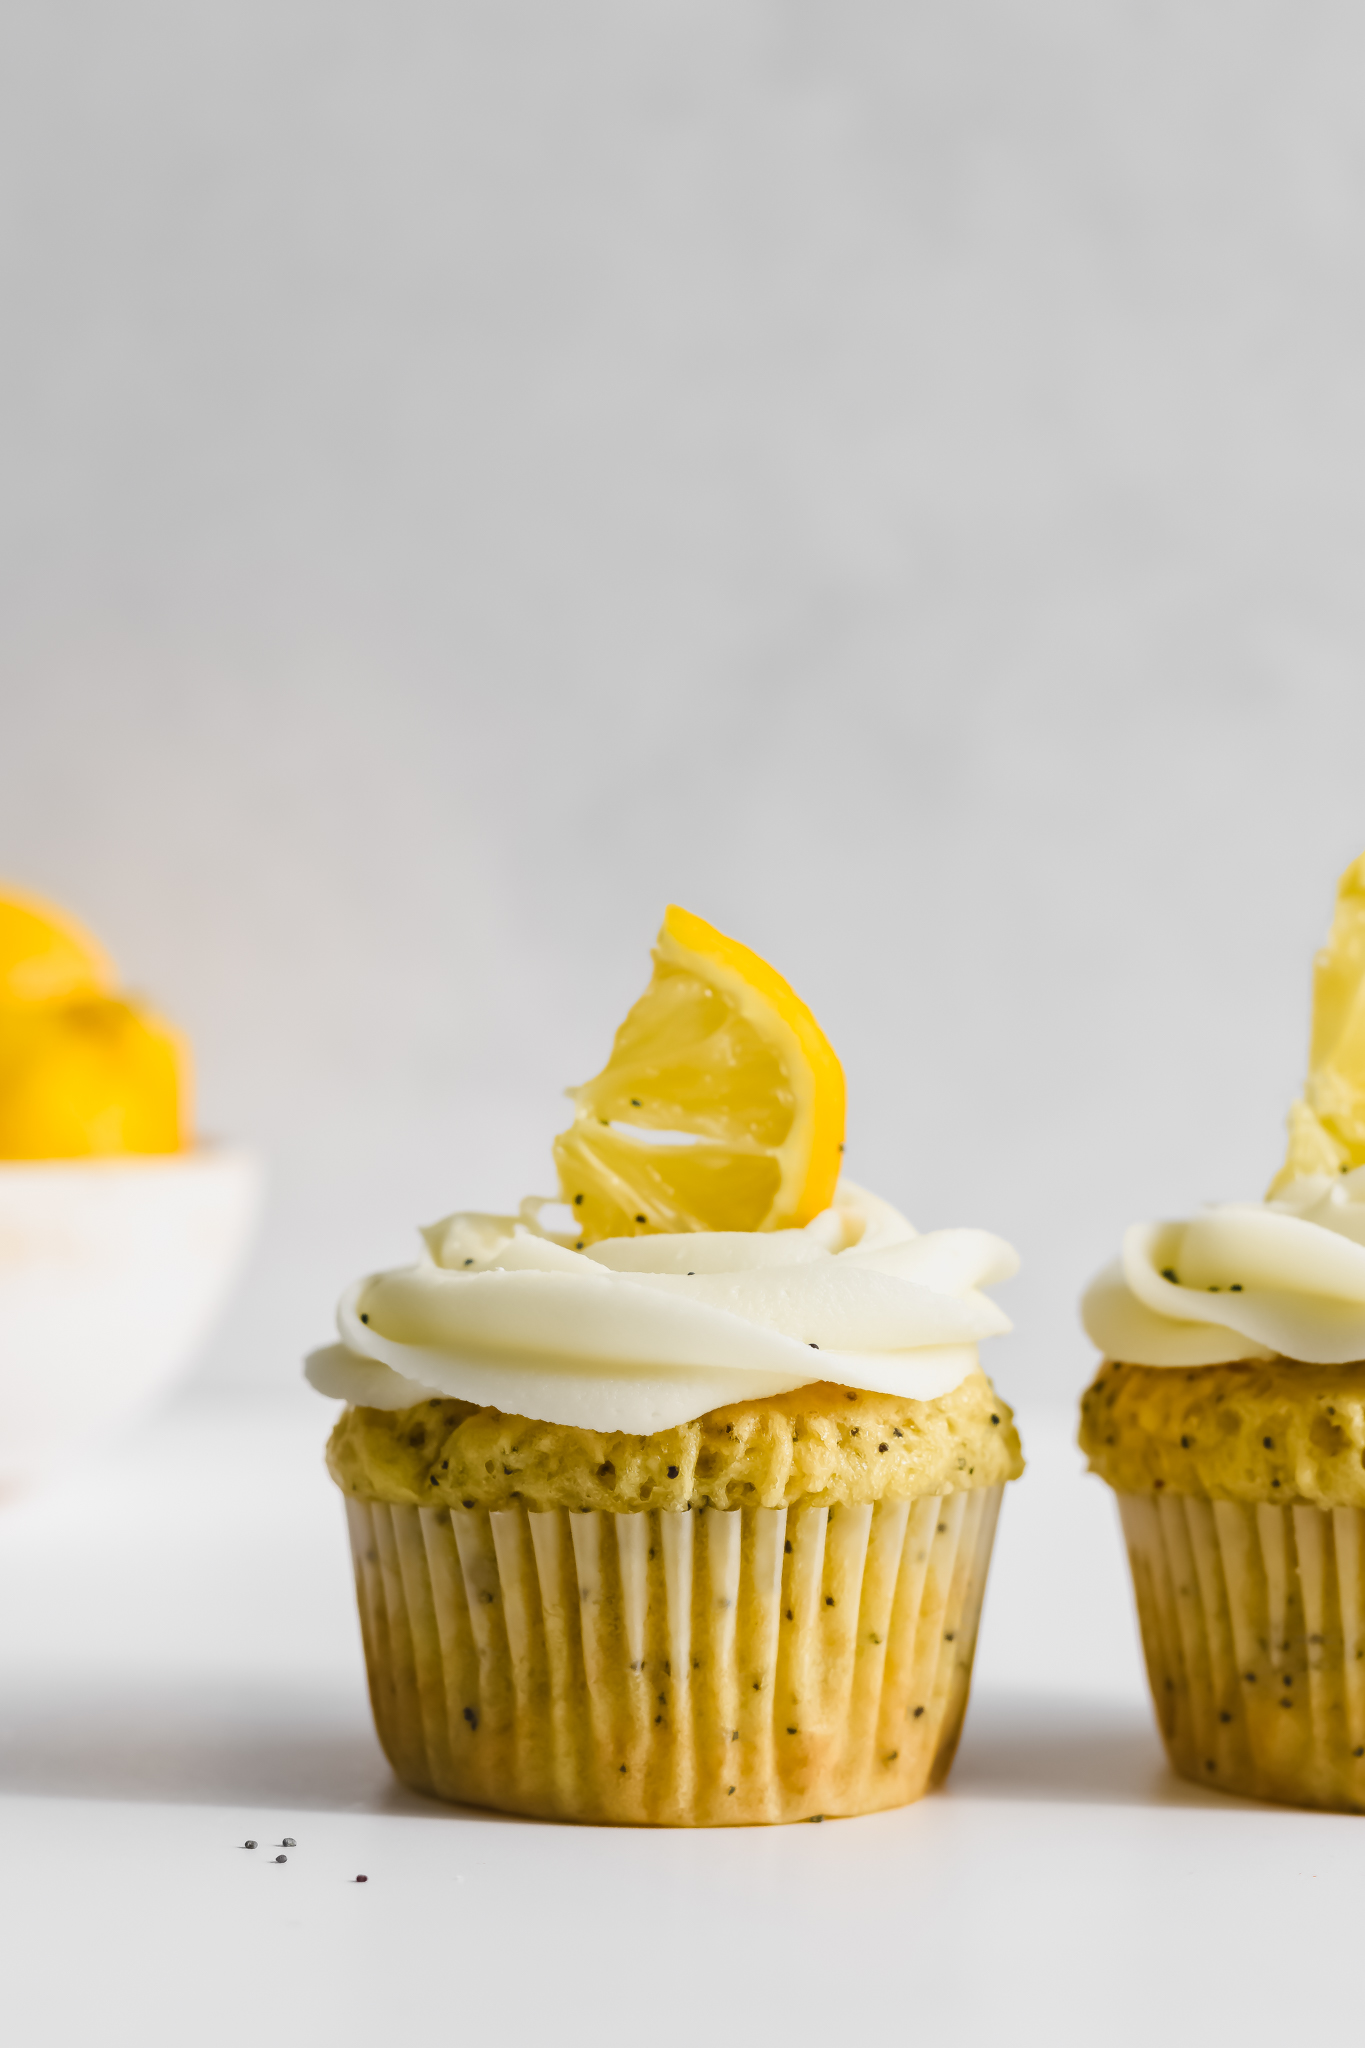 Lemon and Poppy Seed Muffins with Frosting